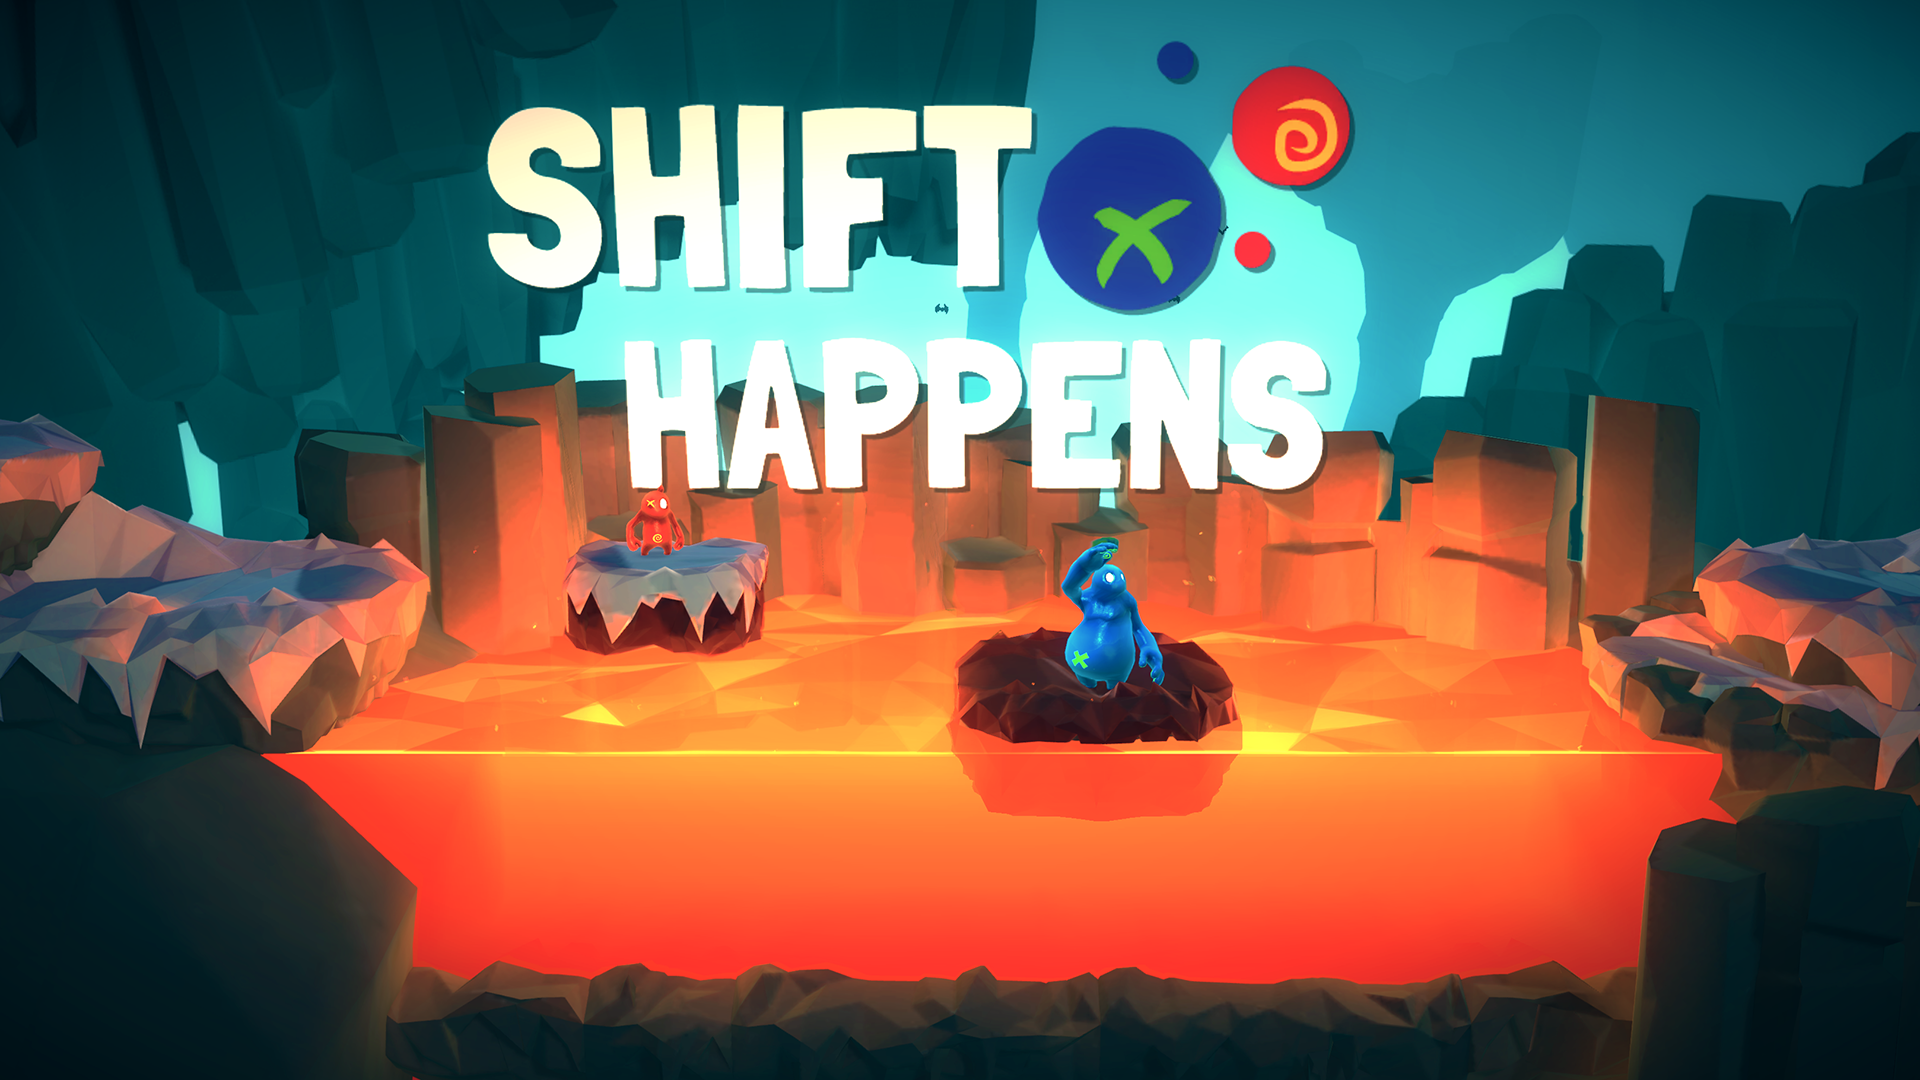 41_shift_happens_grotto_splash_1080p.png